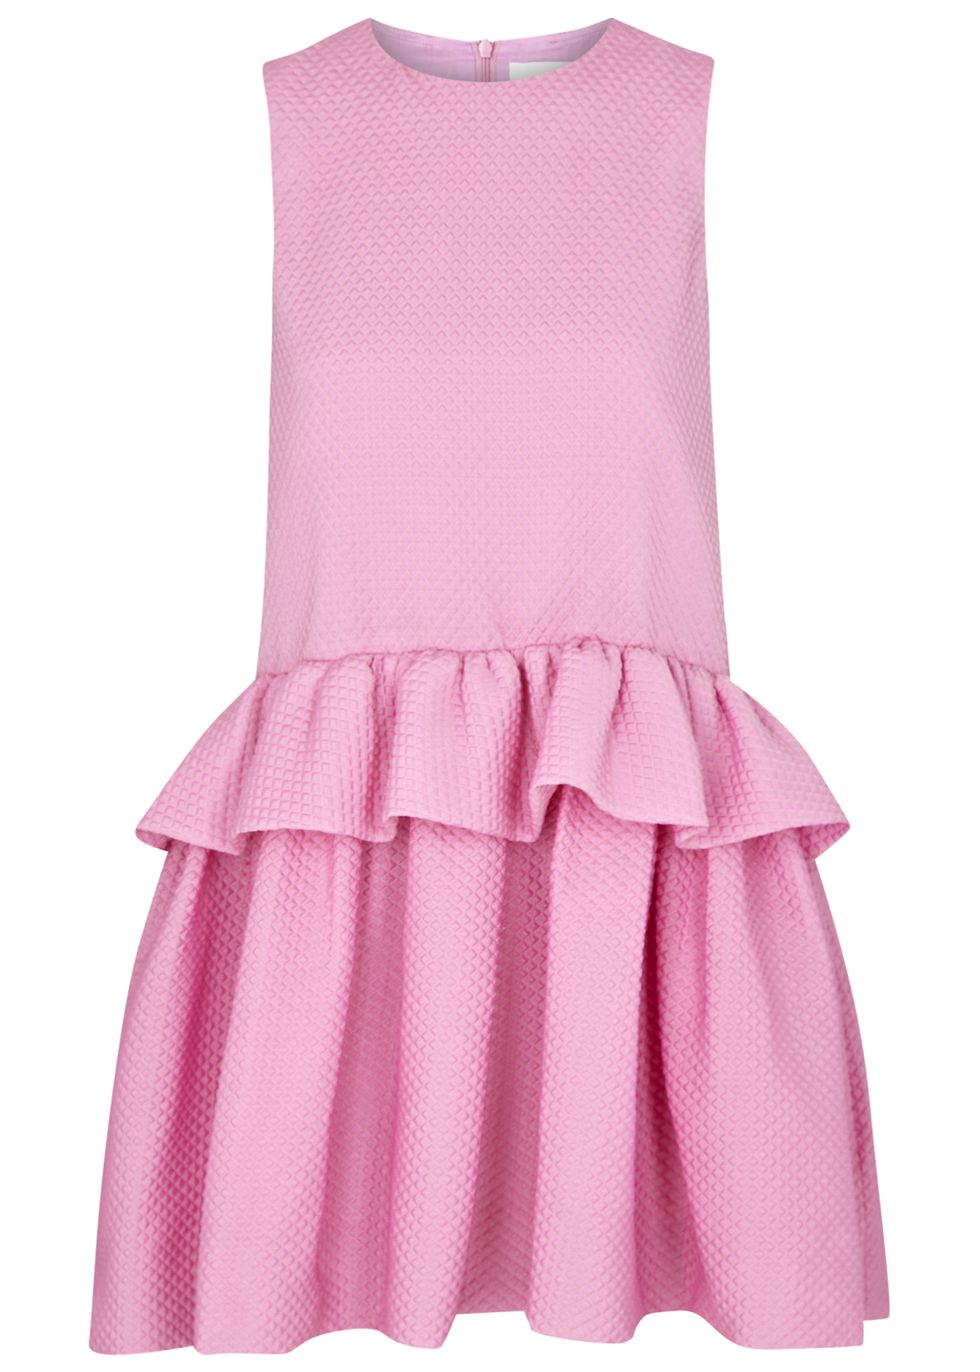 Victoria, Victoria Beckham at Harvey Nichols - Candy pink ruffle mini dr...